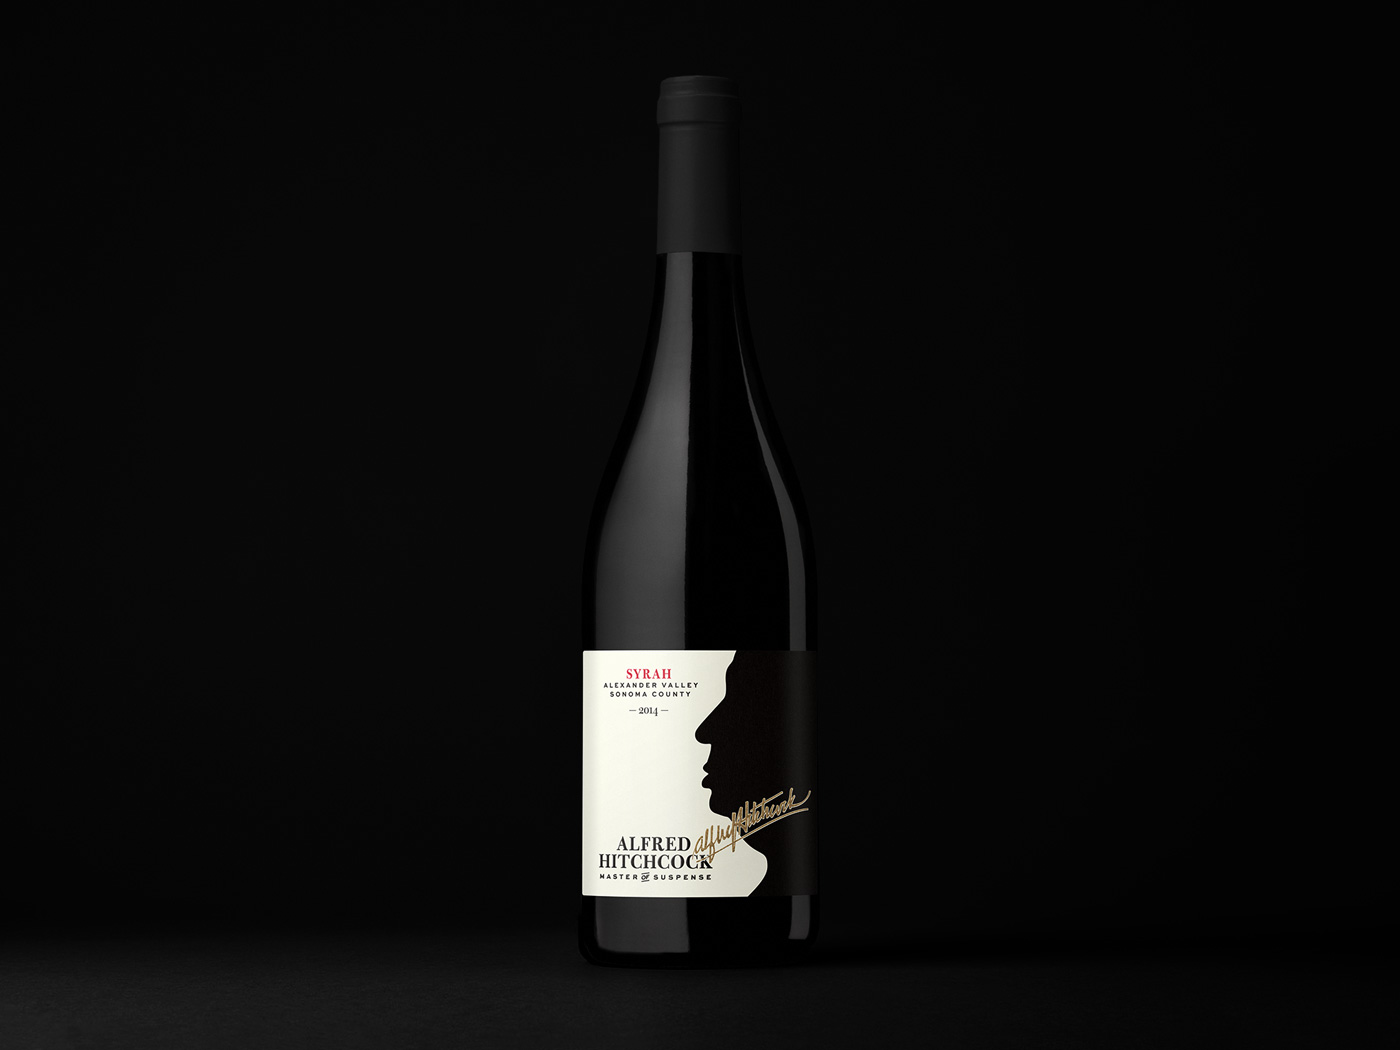 Alfred Hitchcock Master of Suspense Syrah 2014